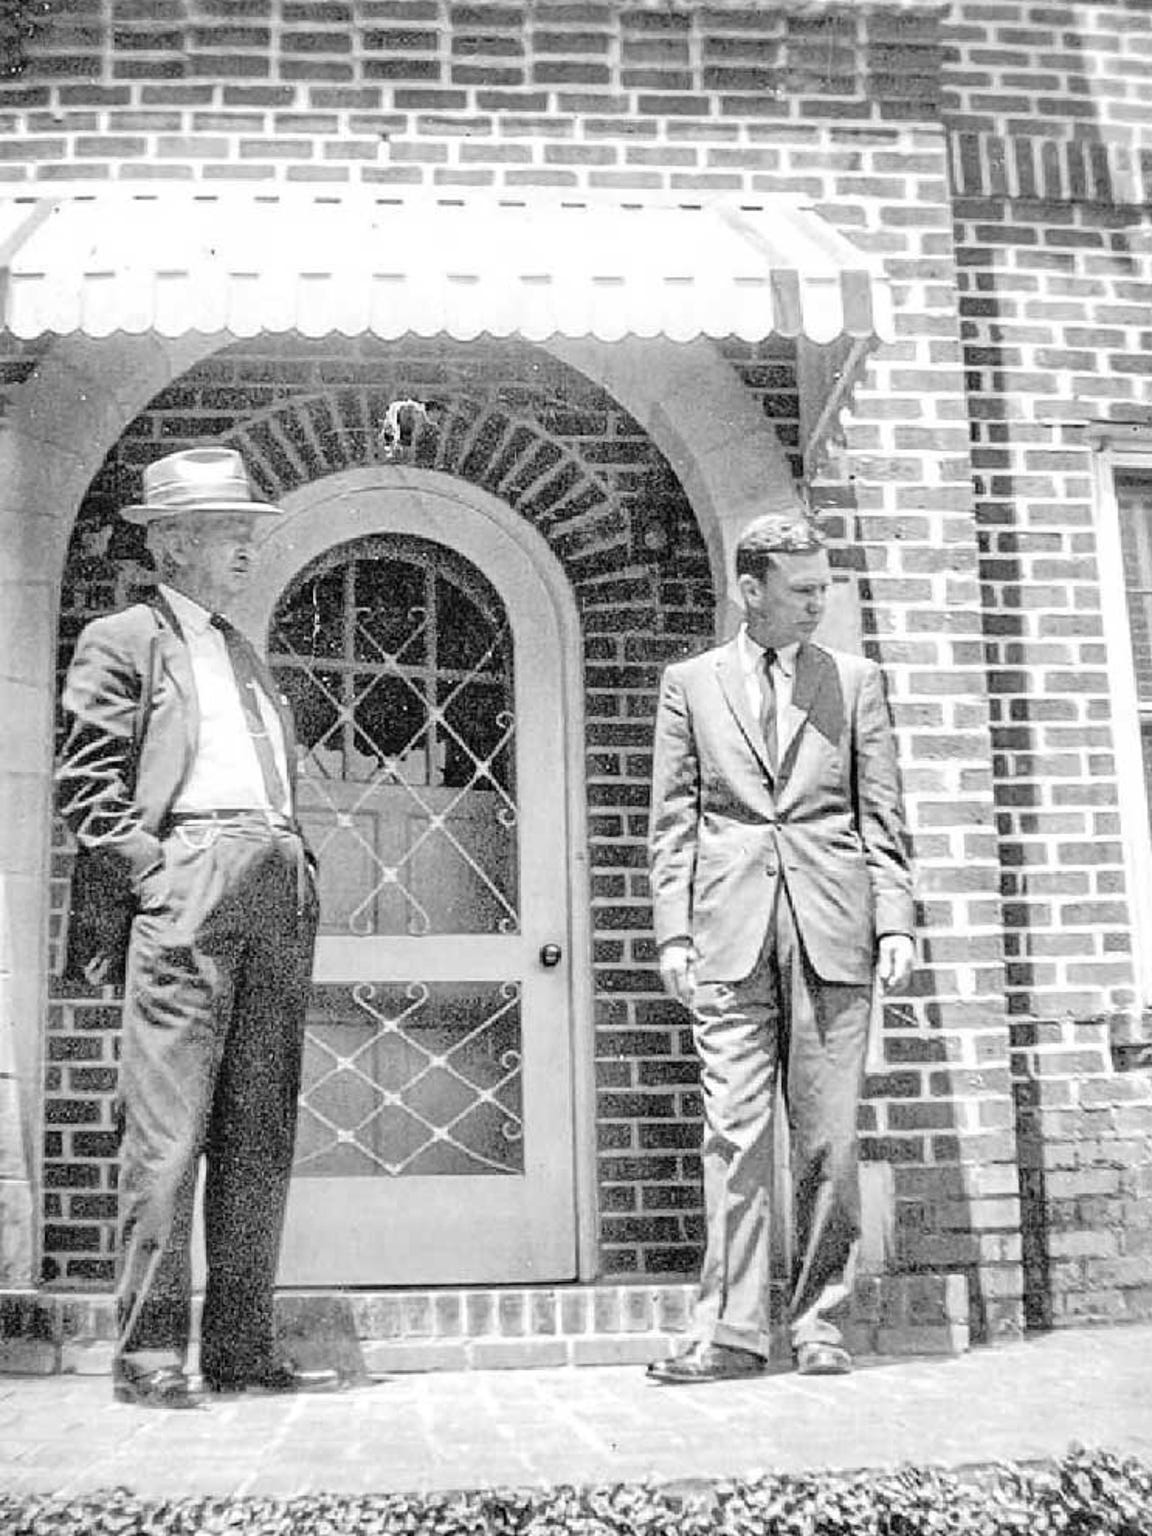 T.S. Green, left, stands with one of his sones, T.S. Green Jr., in front of his home at 228 E. Tharpe St., circa 1960. Green developed the nearby Sunniland neighborhood in the 1920s and 1930s.